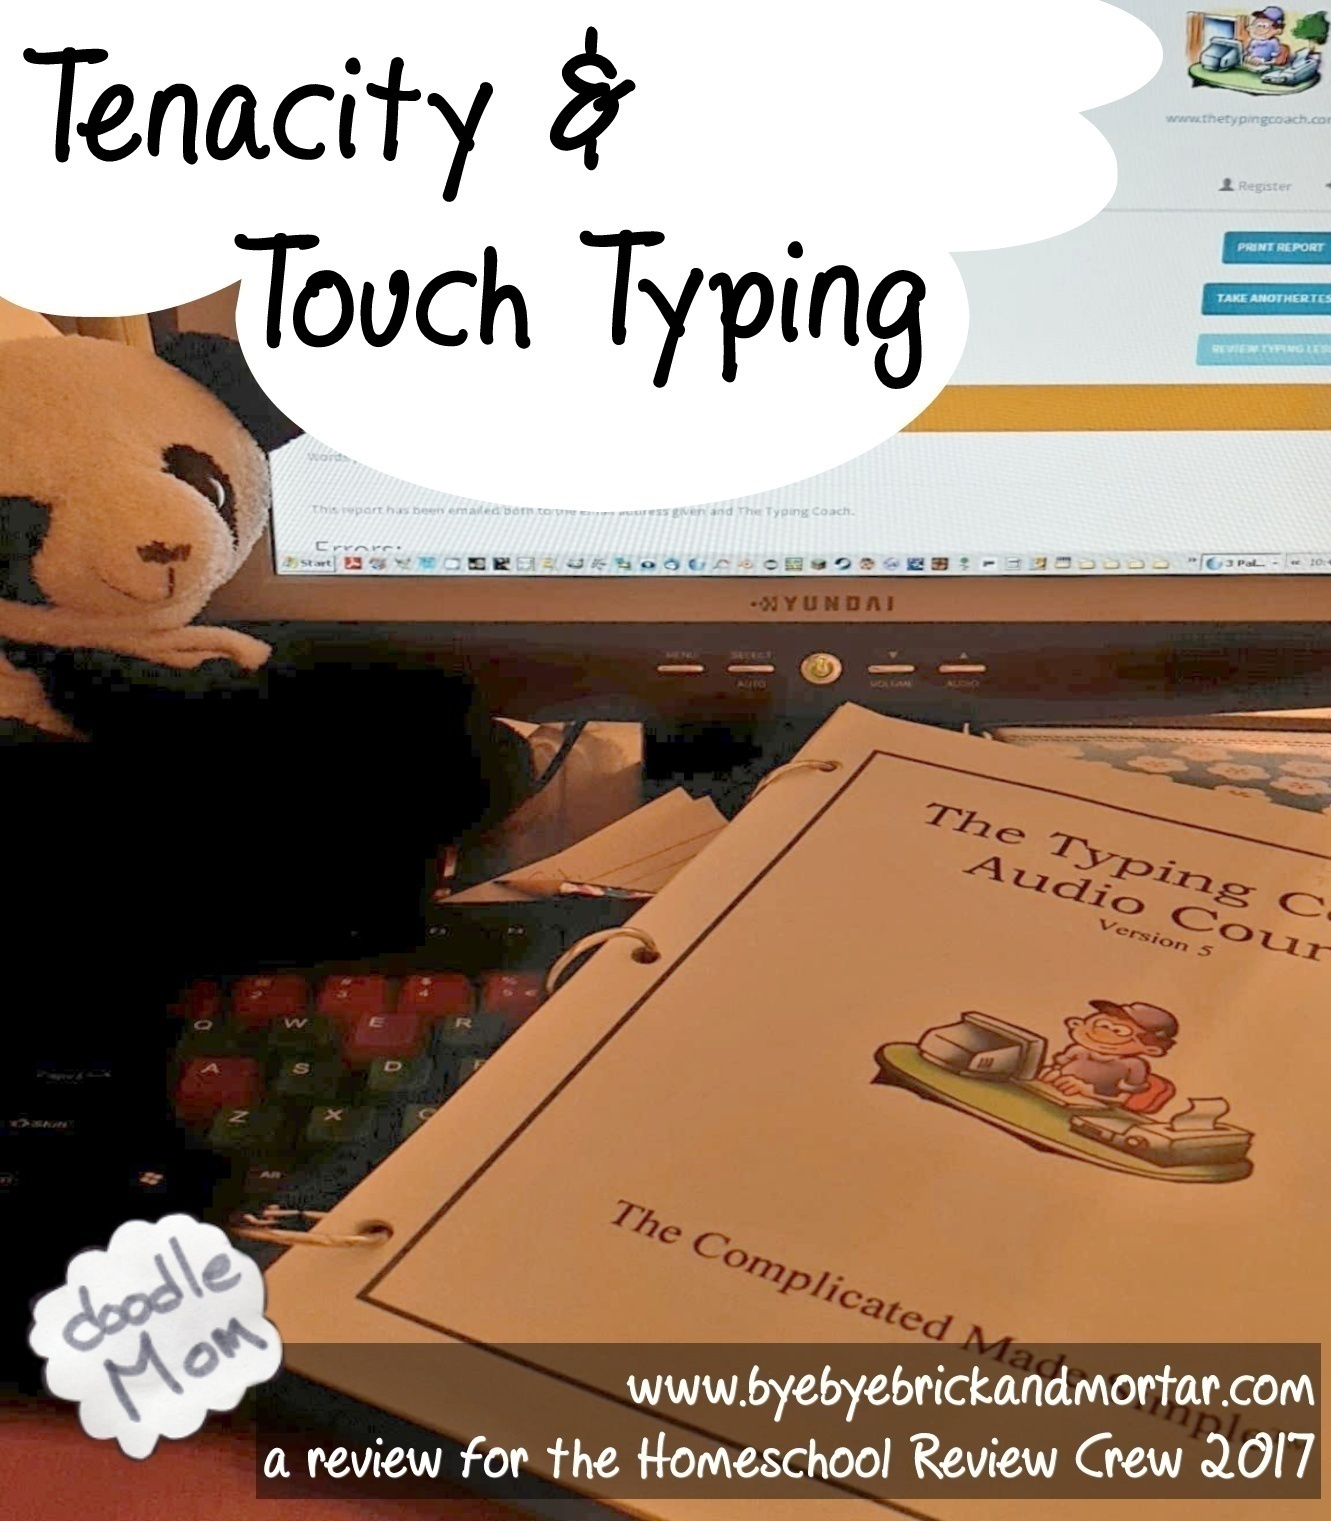 Tenacity & Touch Typing